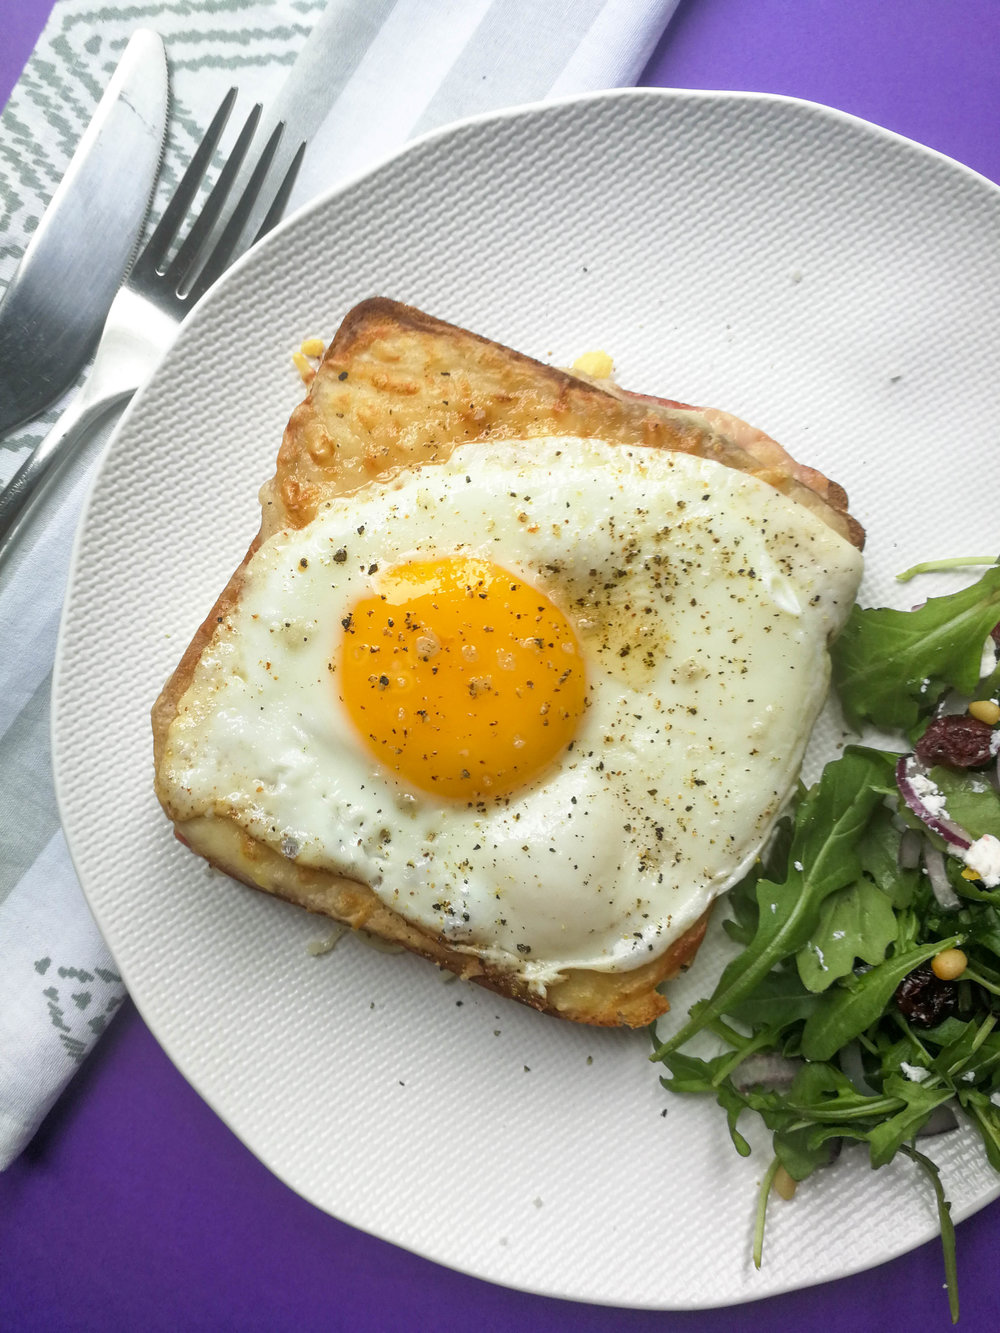 The croque madame: a grilled ham and cheese sandwich with two layers of bechamel sauce and a fried egg on top. That yolk, huh?